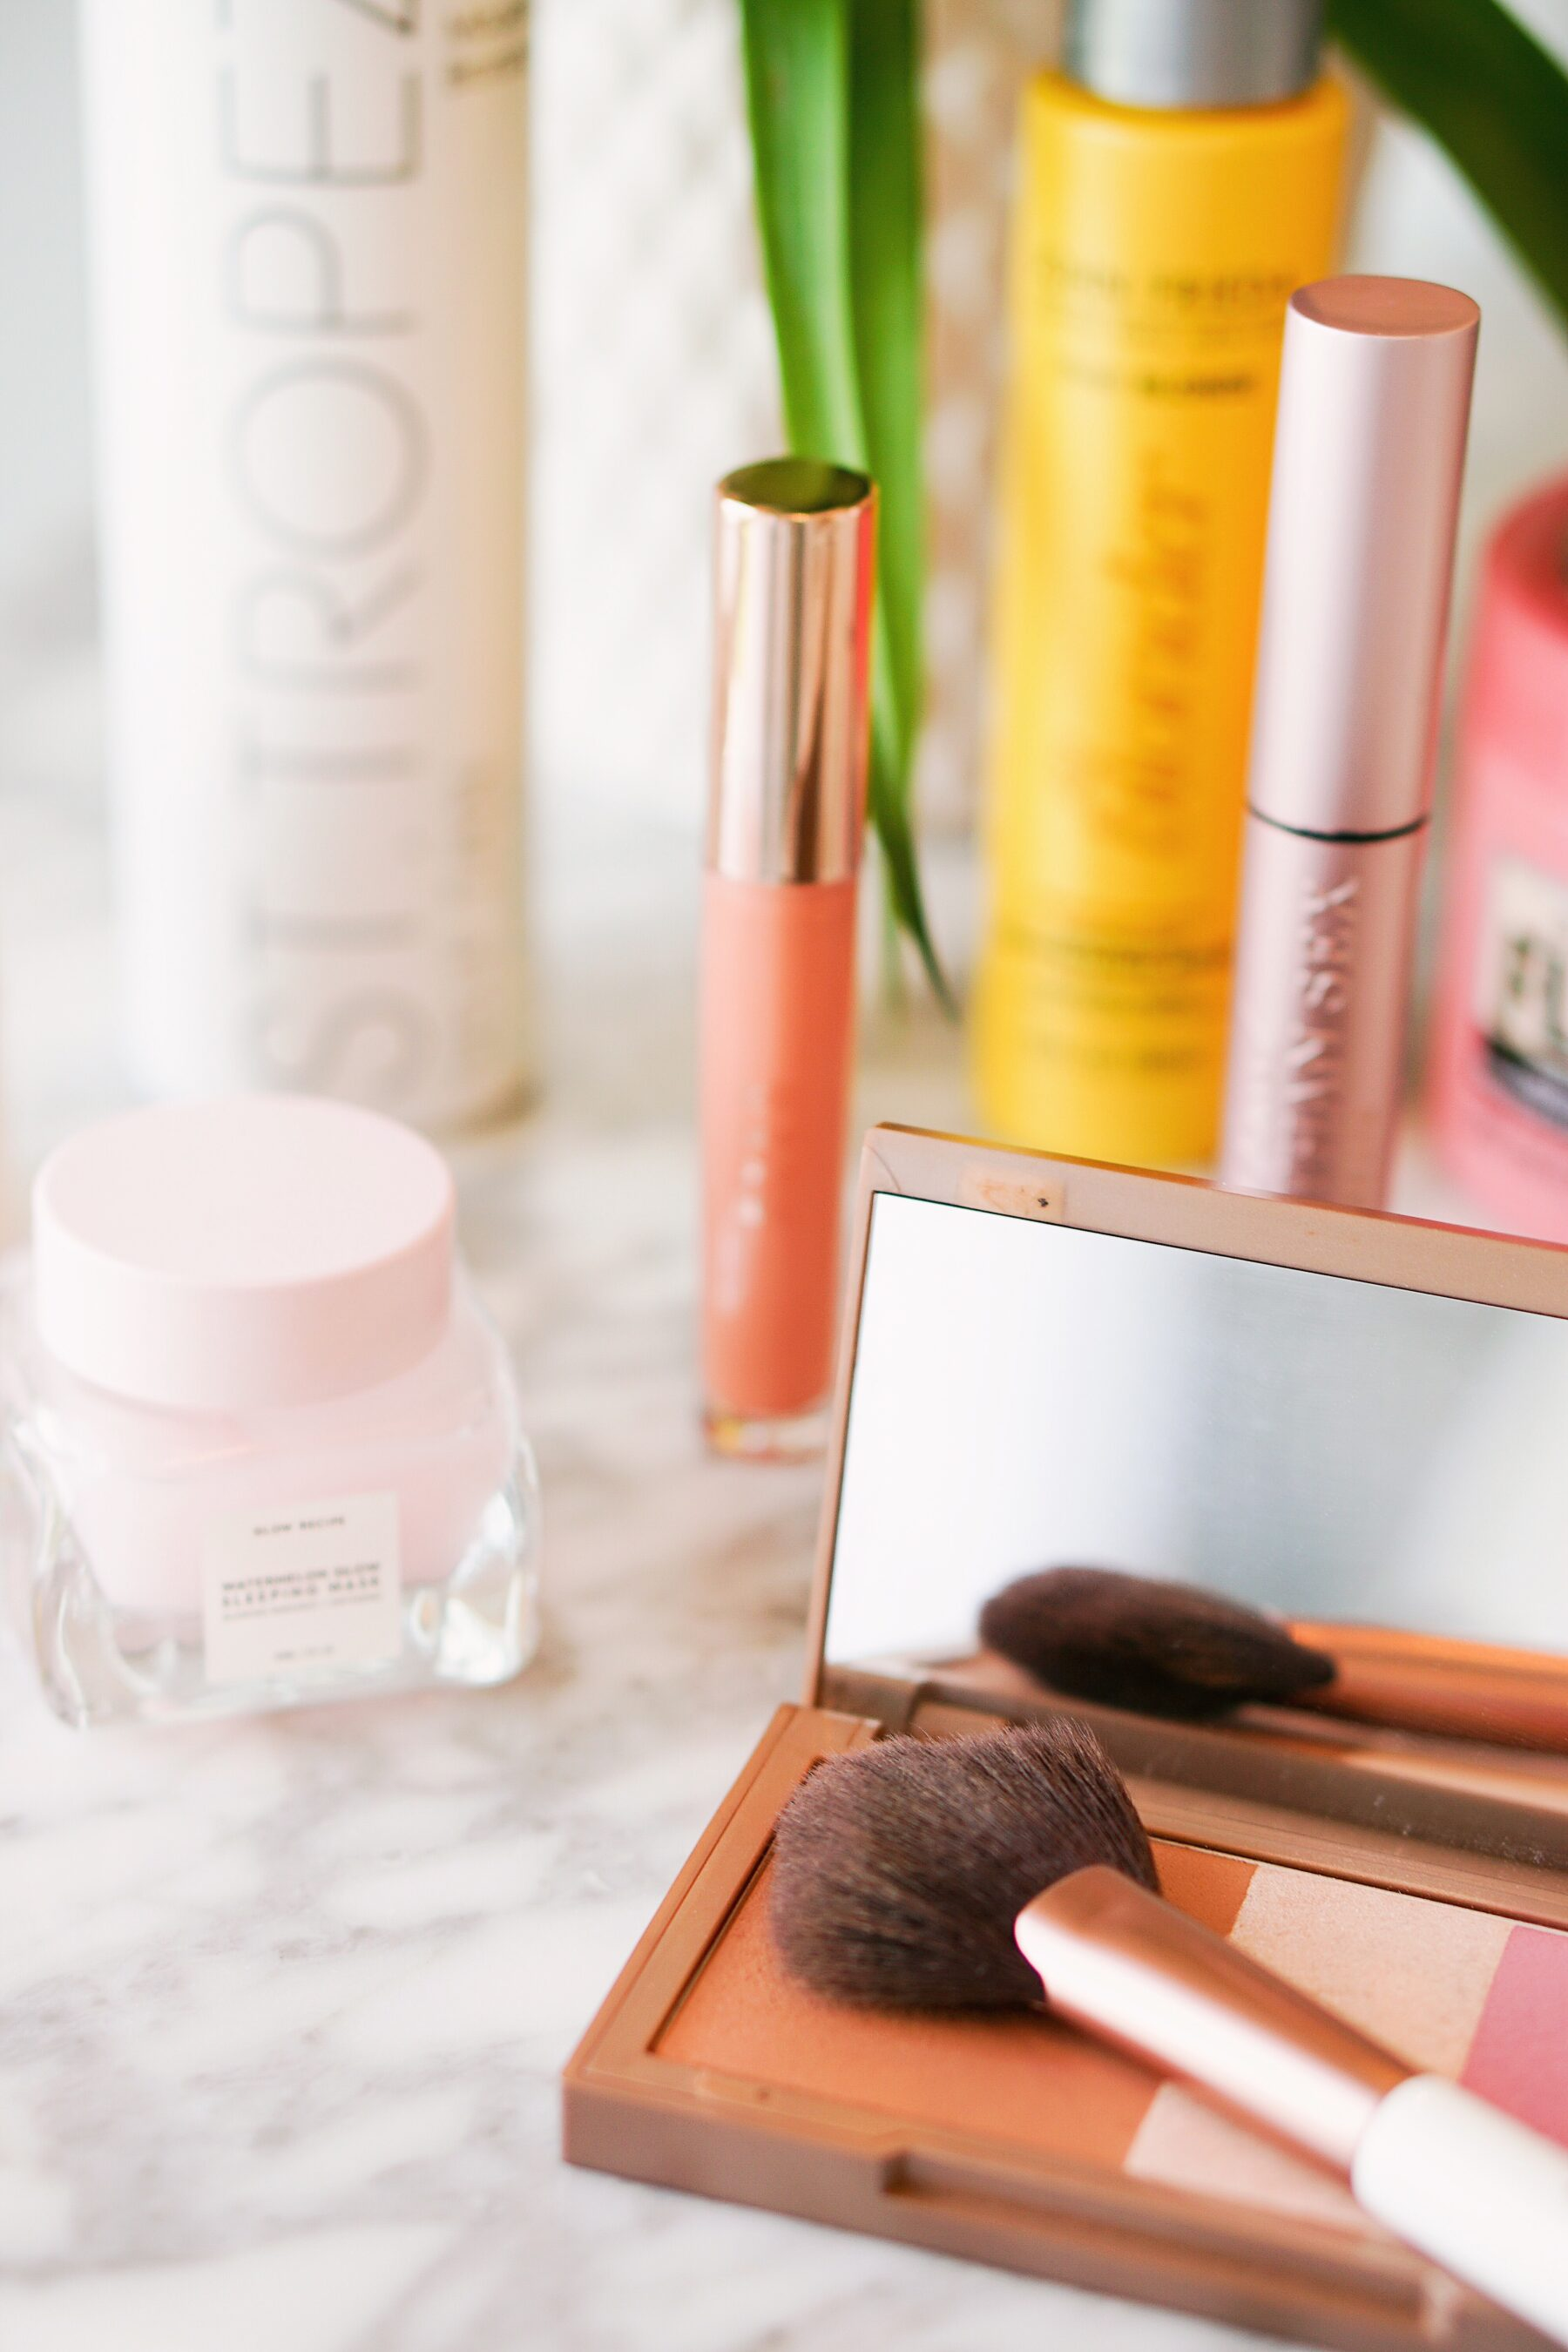 Top 10 summer beauty products